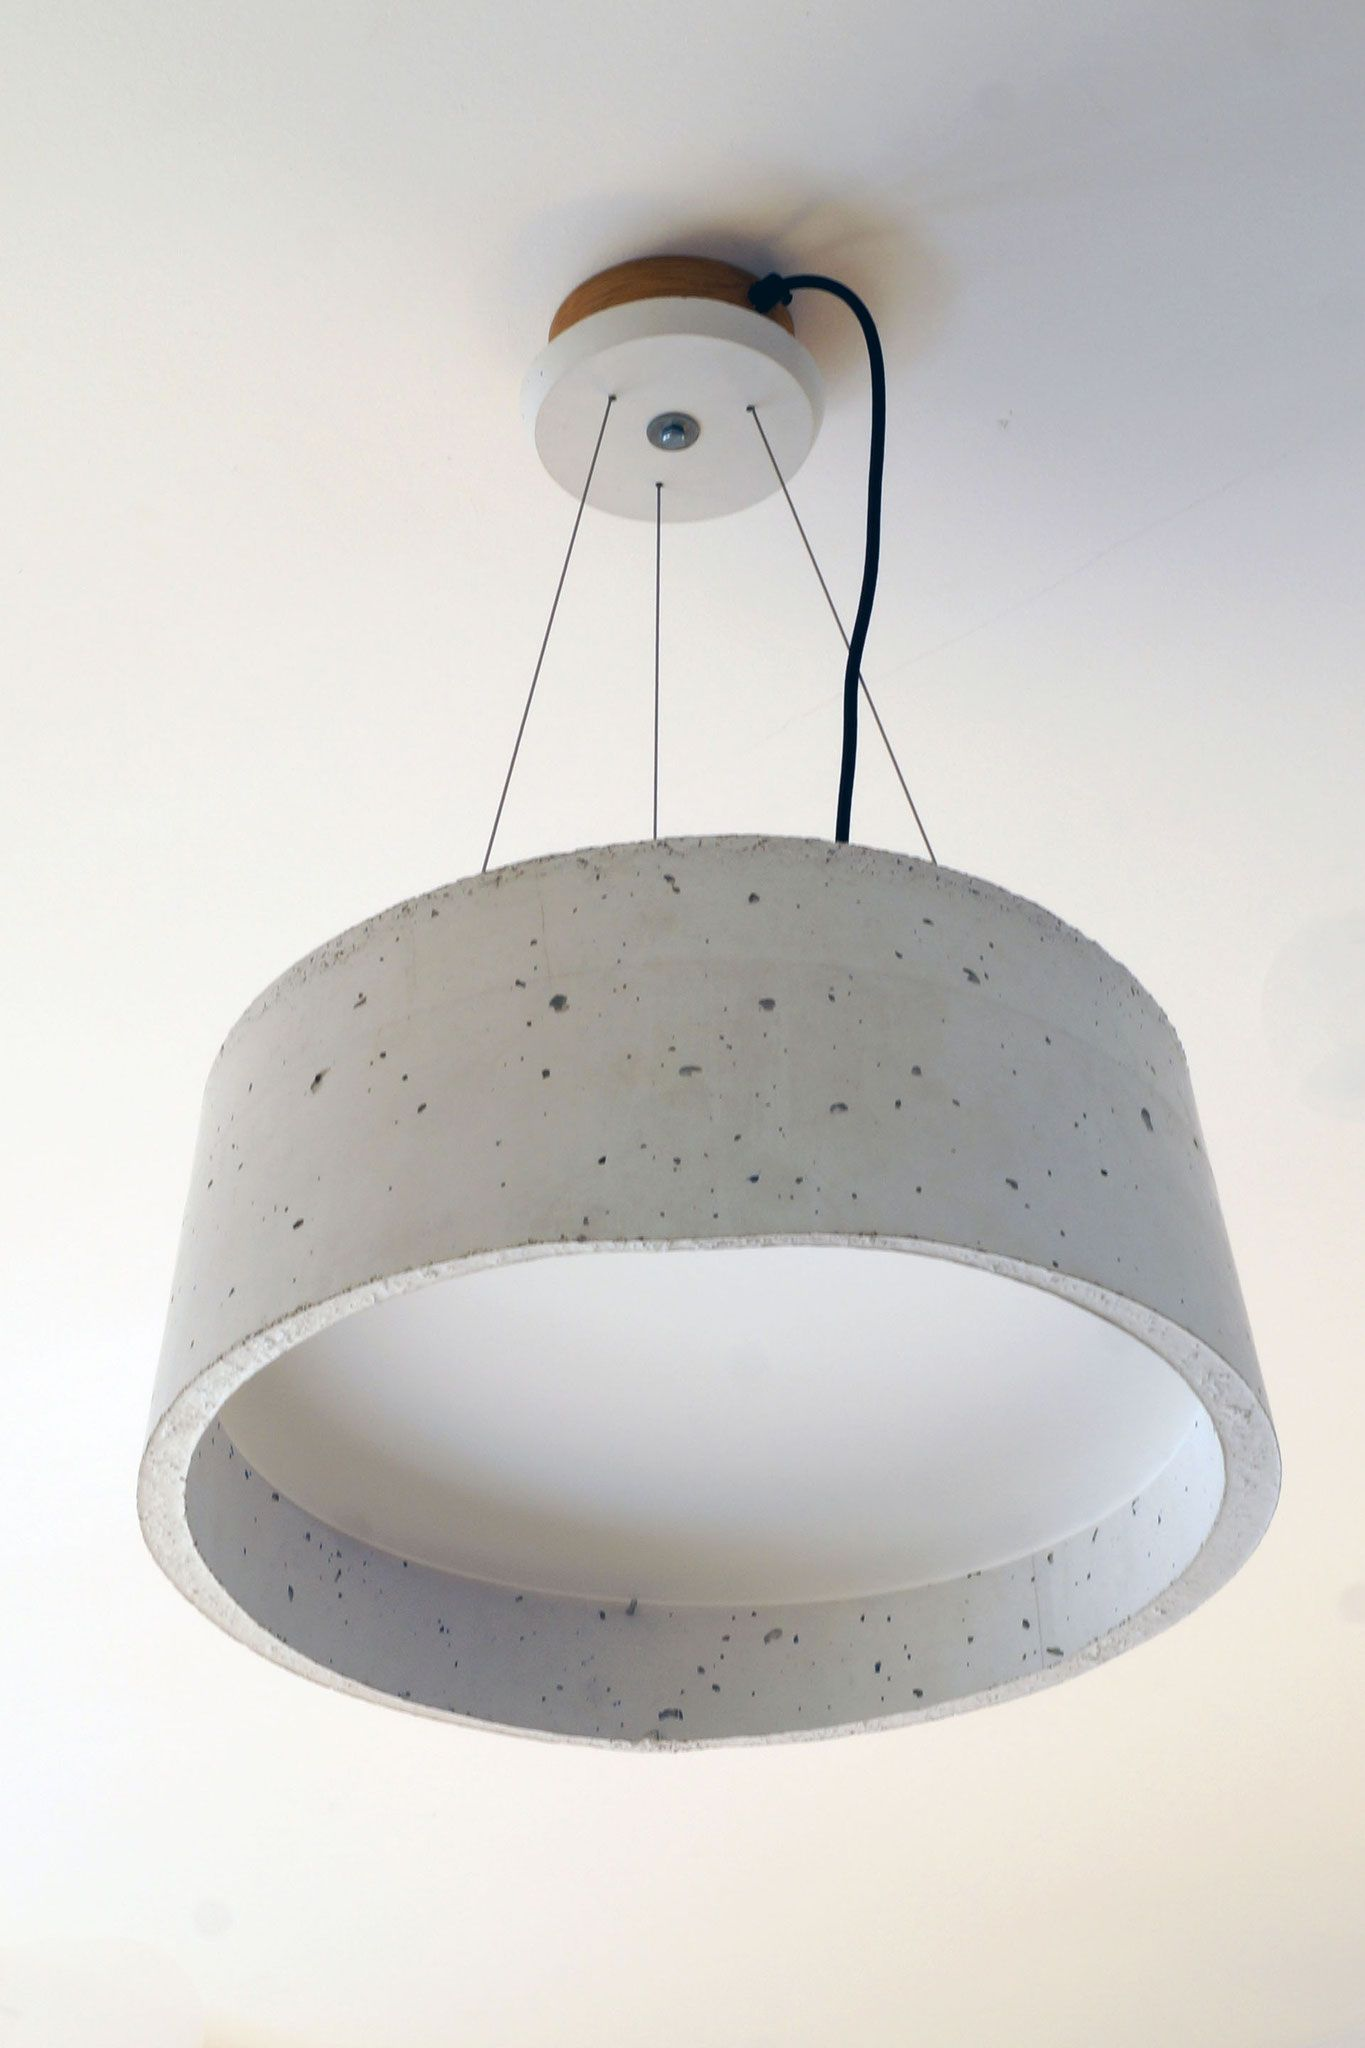 Beton Pendellampe Lampe Beton Esstisch Lampe In 2018 Lighting